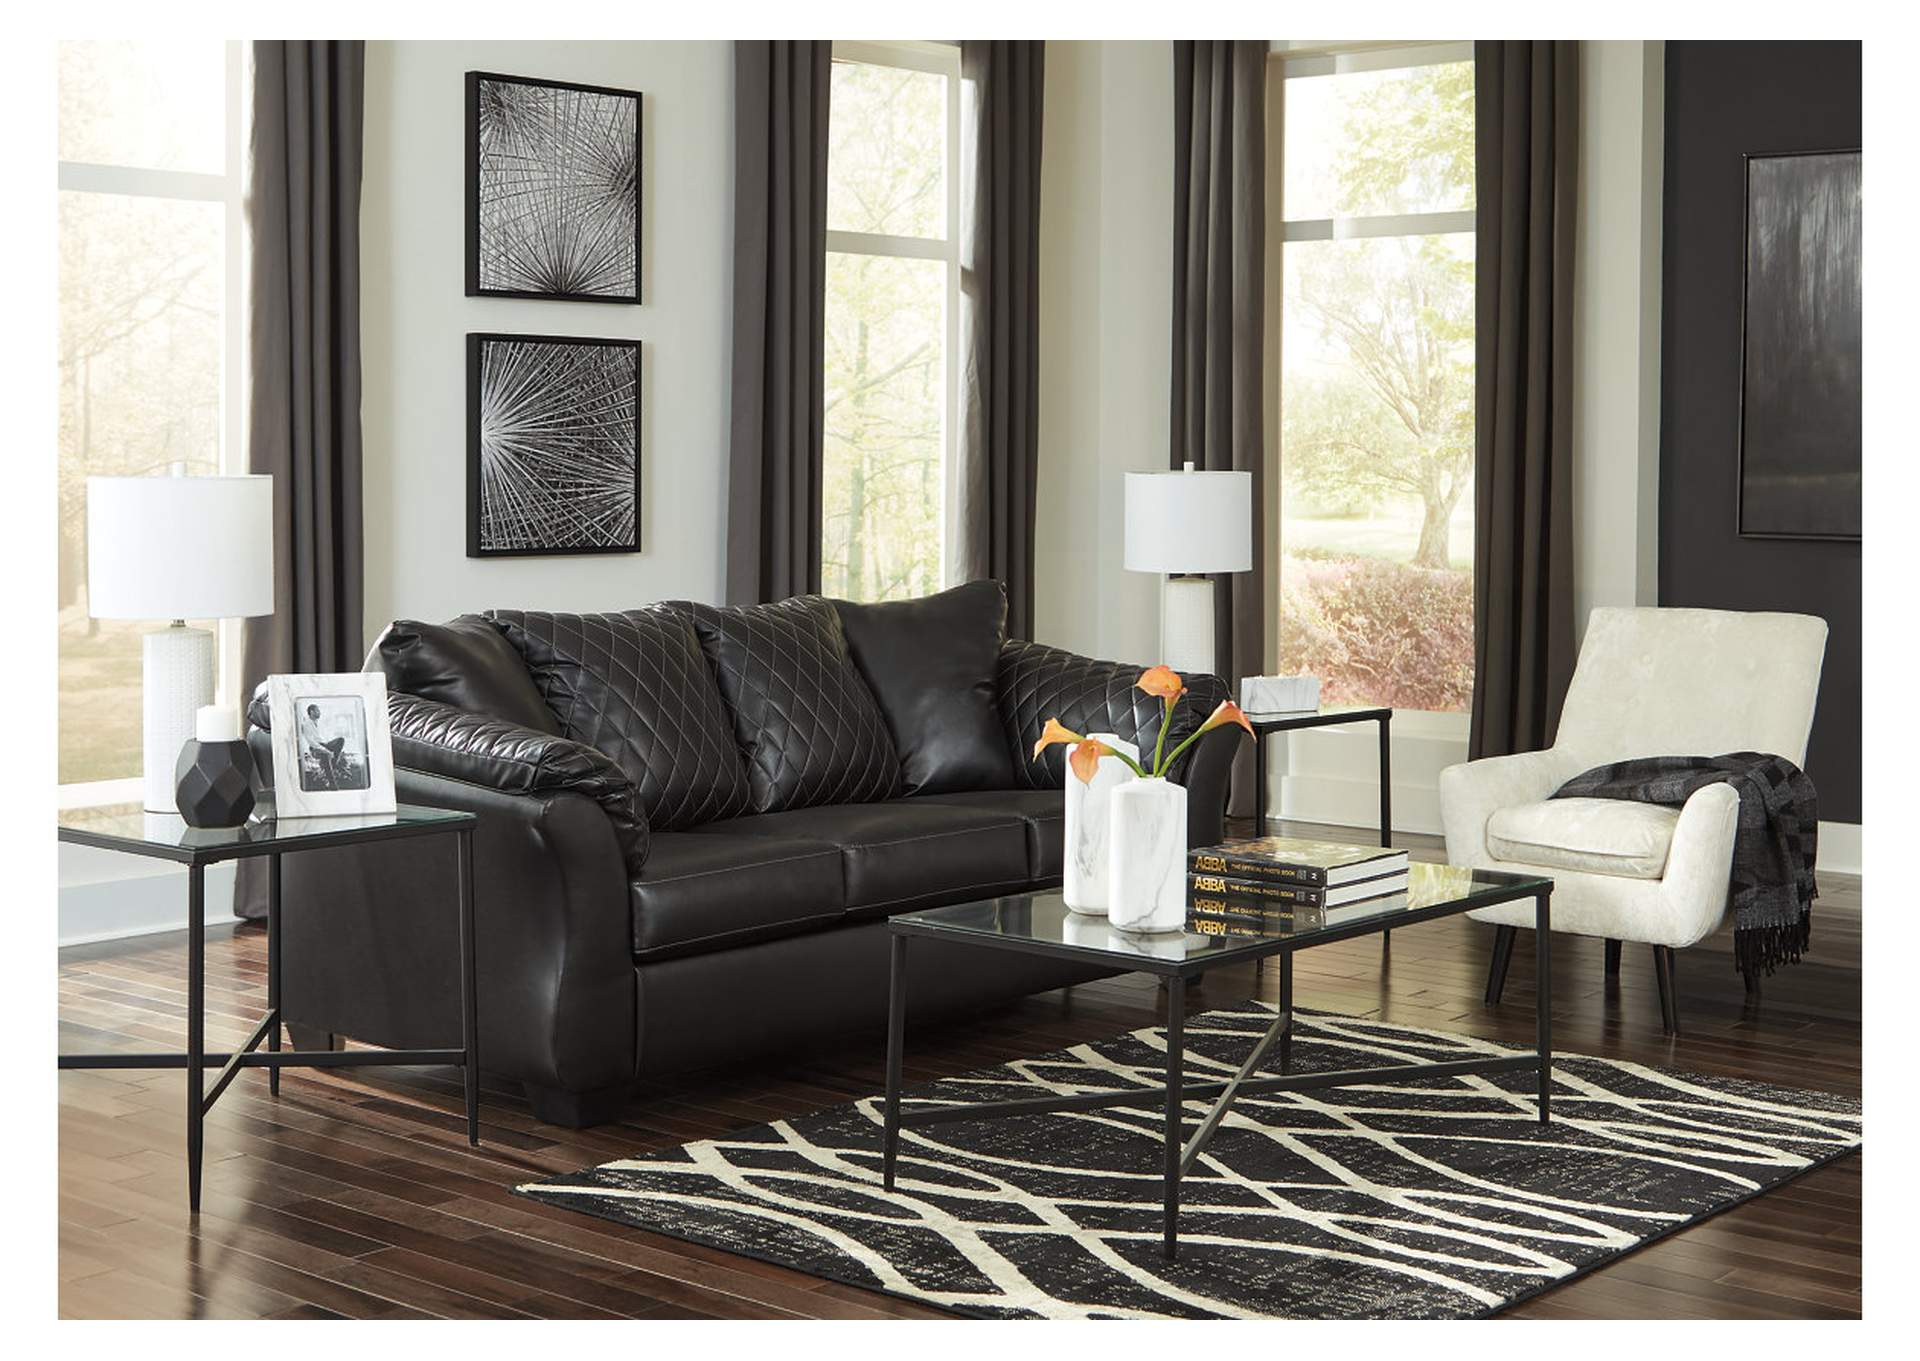 Bertrillo Black Sofa,Signature Design By Ashley